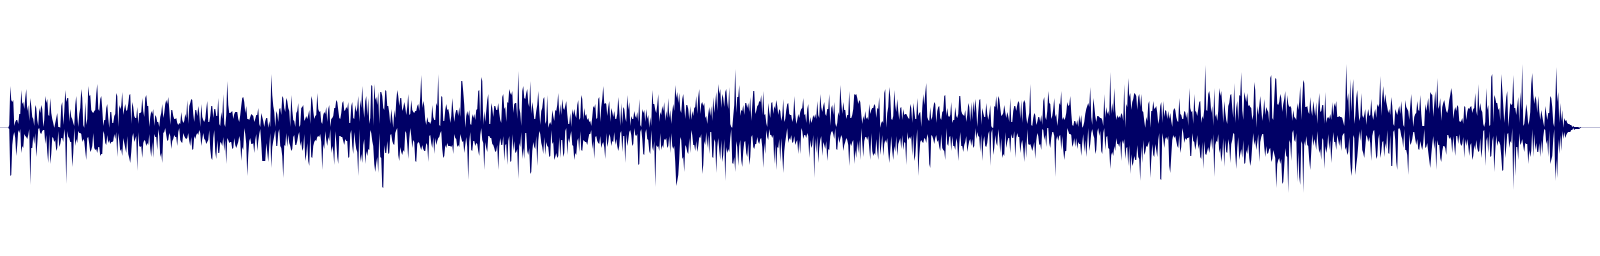 waveform of track #121518